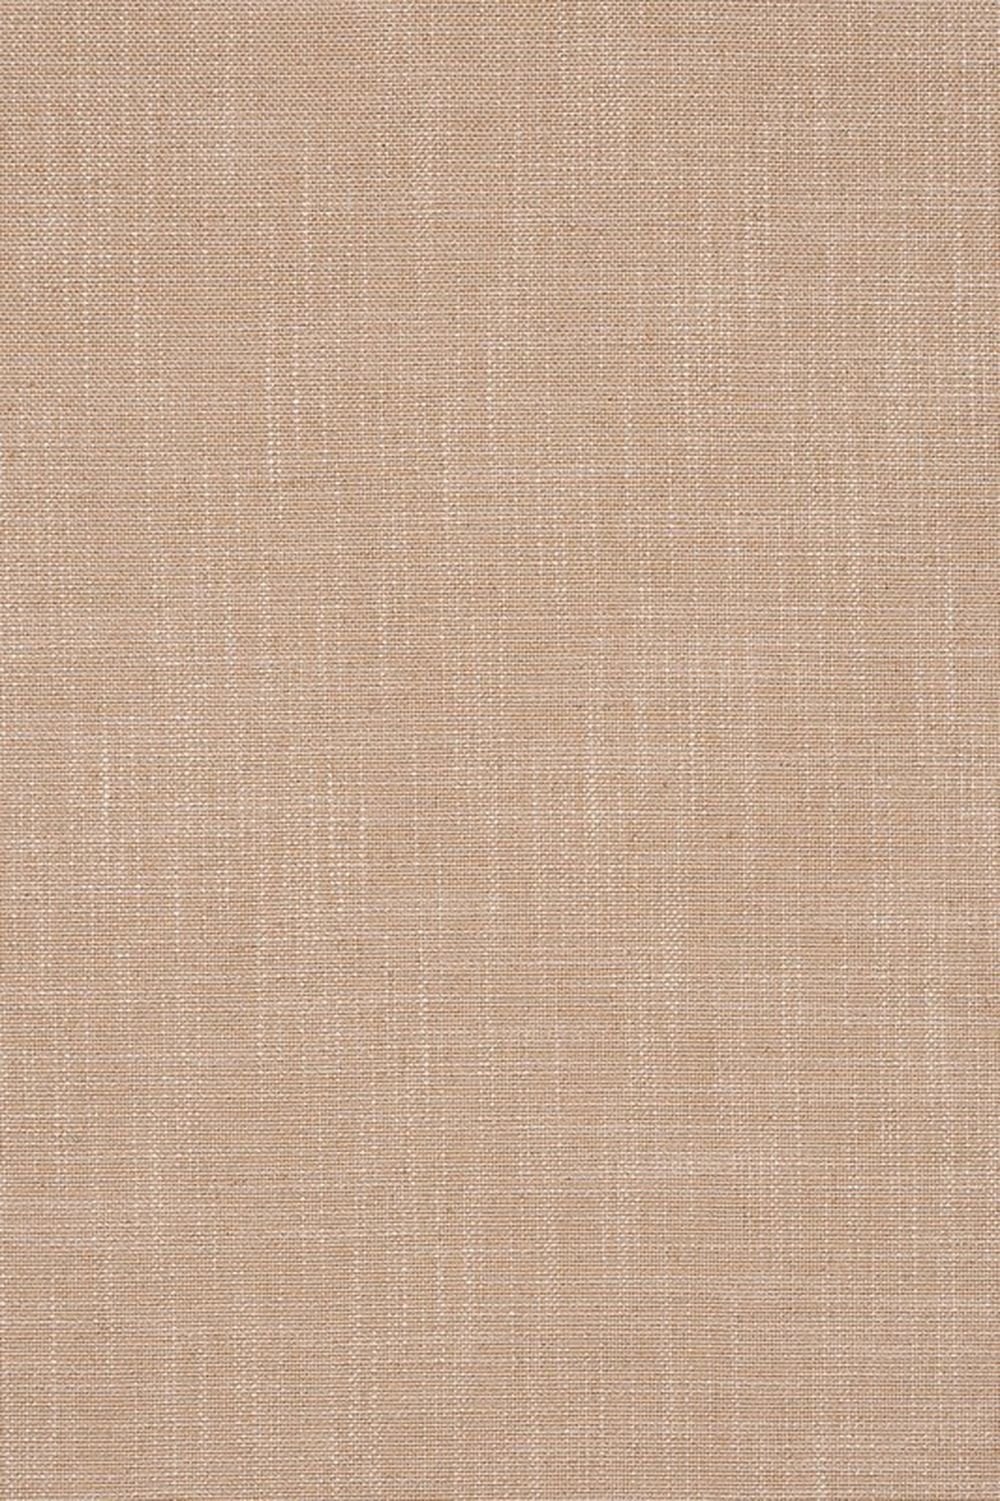 Photo of the fabric Allium Peach swatch by Mokum. Use for Upholstery Heavy Duty, Accessory. Style of Plain, Texture